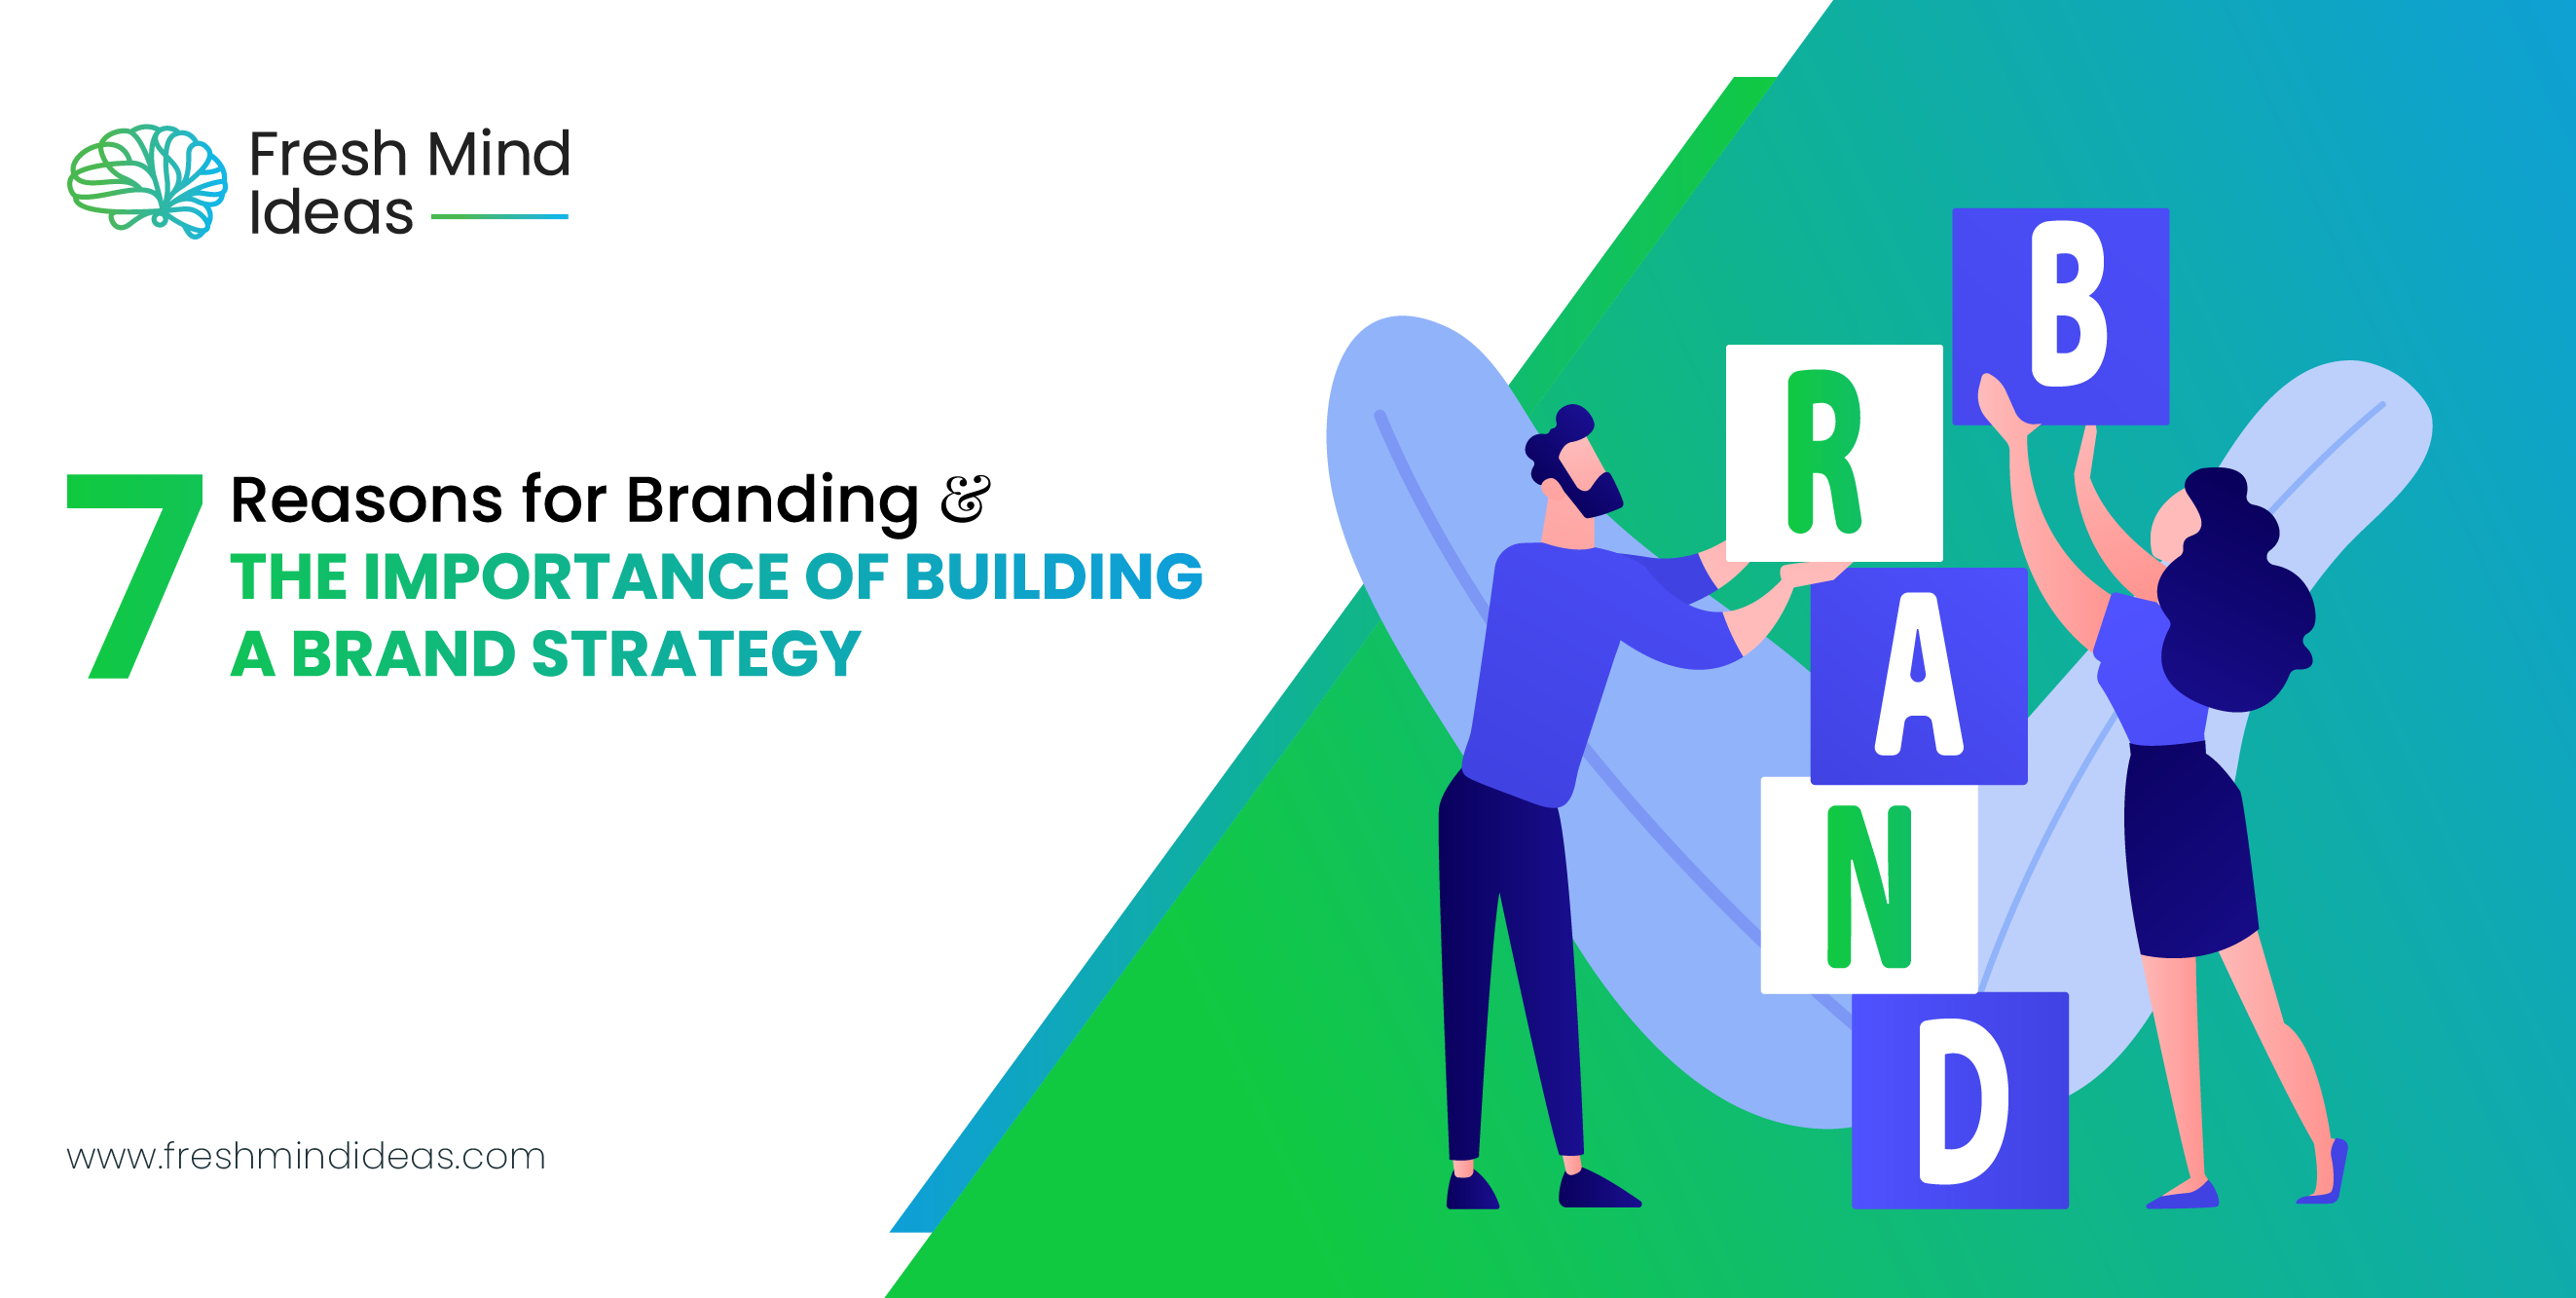 7 Reasons for Branding & the Importance of Building a Brand Strategy